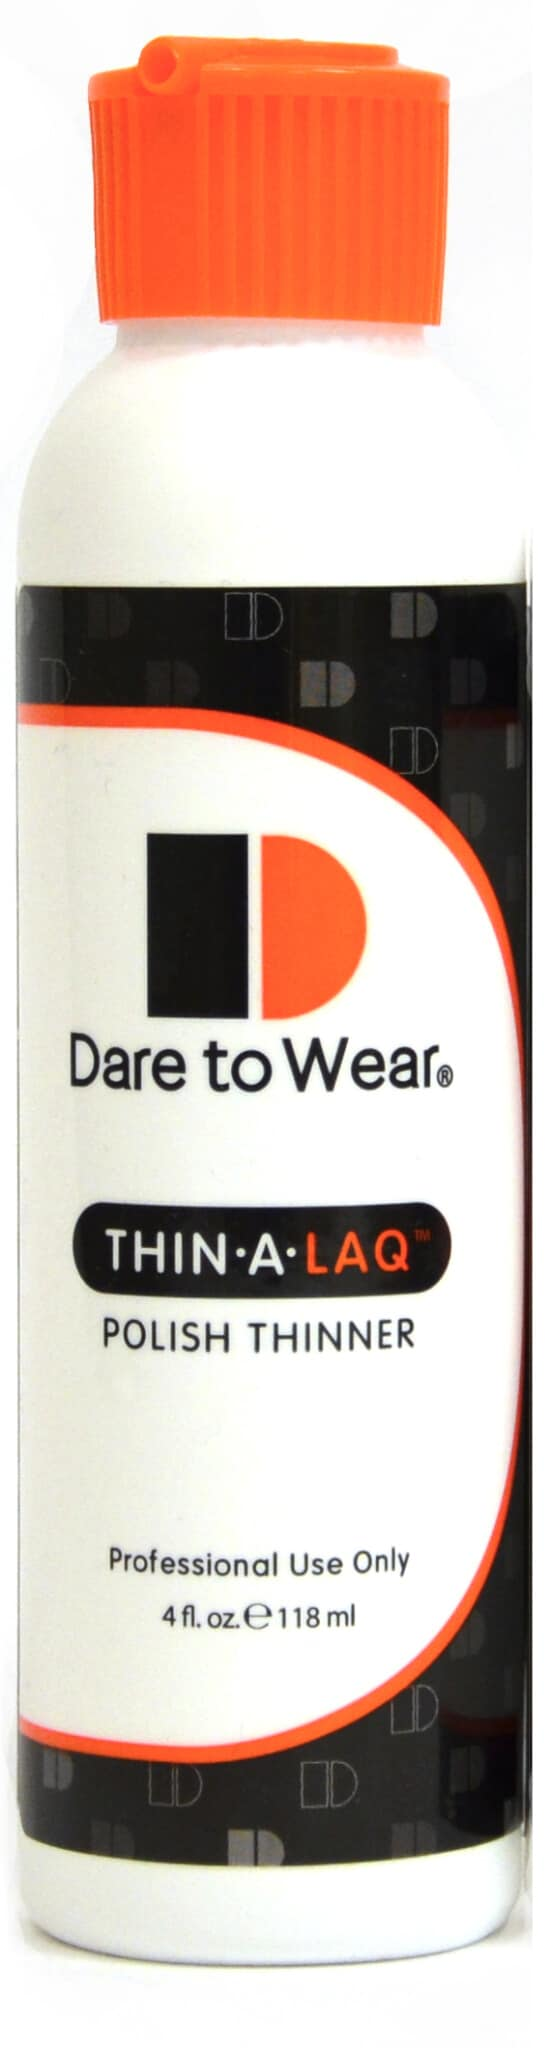 Dear to Wear Thin-a-Laq product bottle.